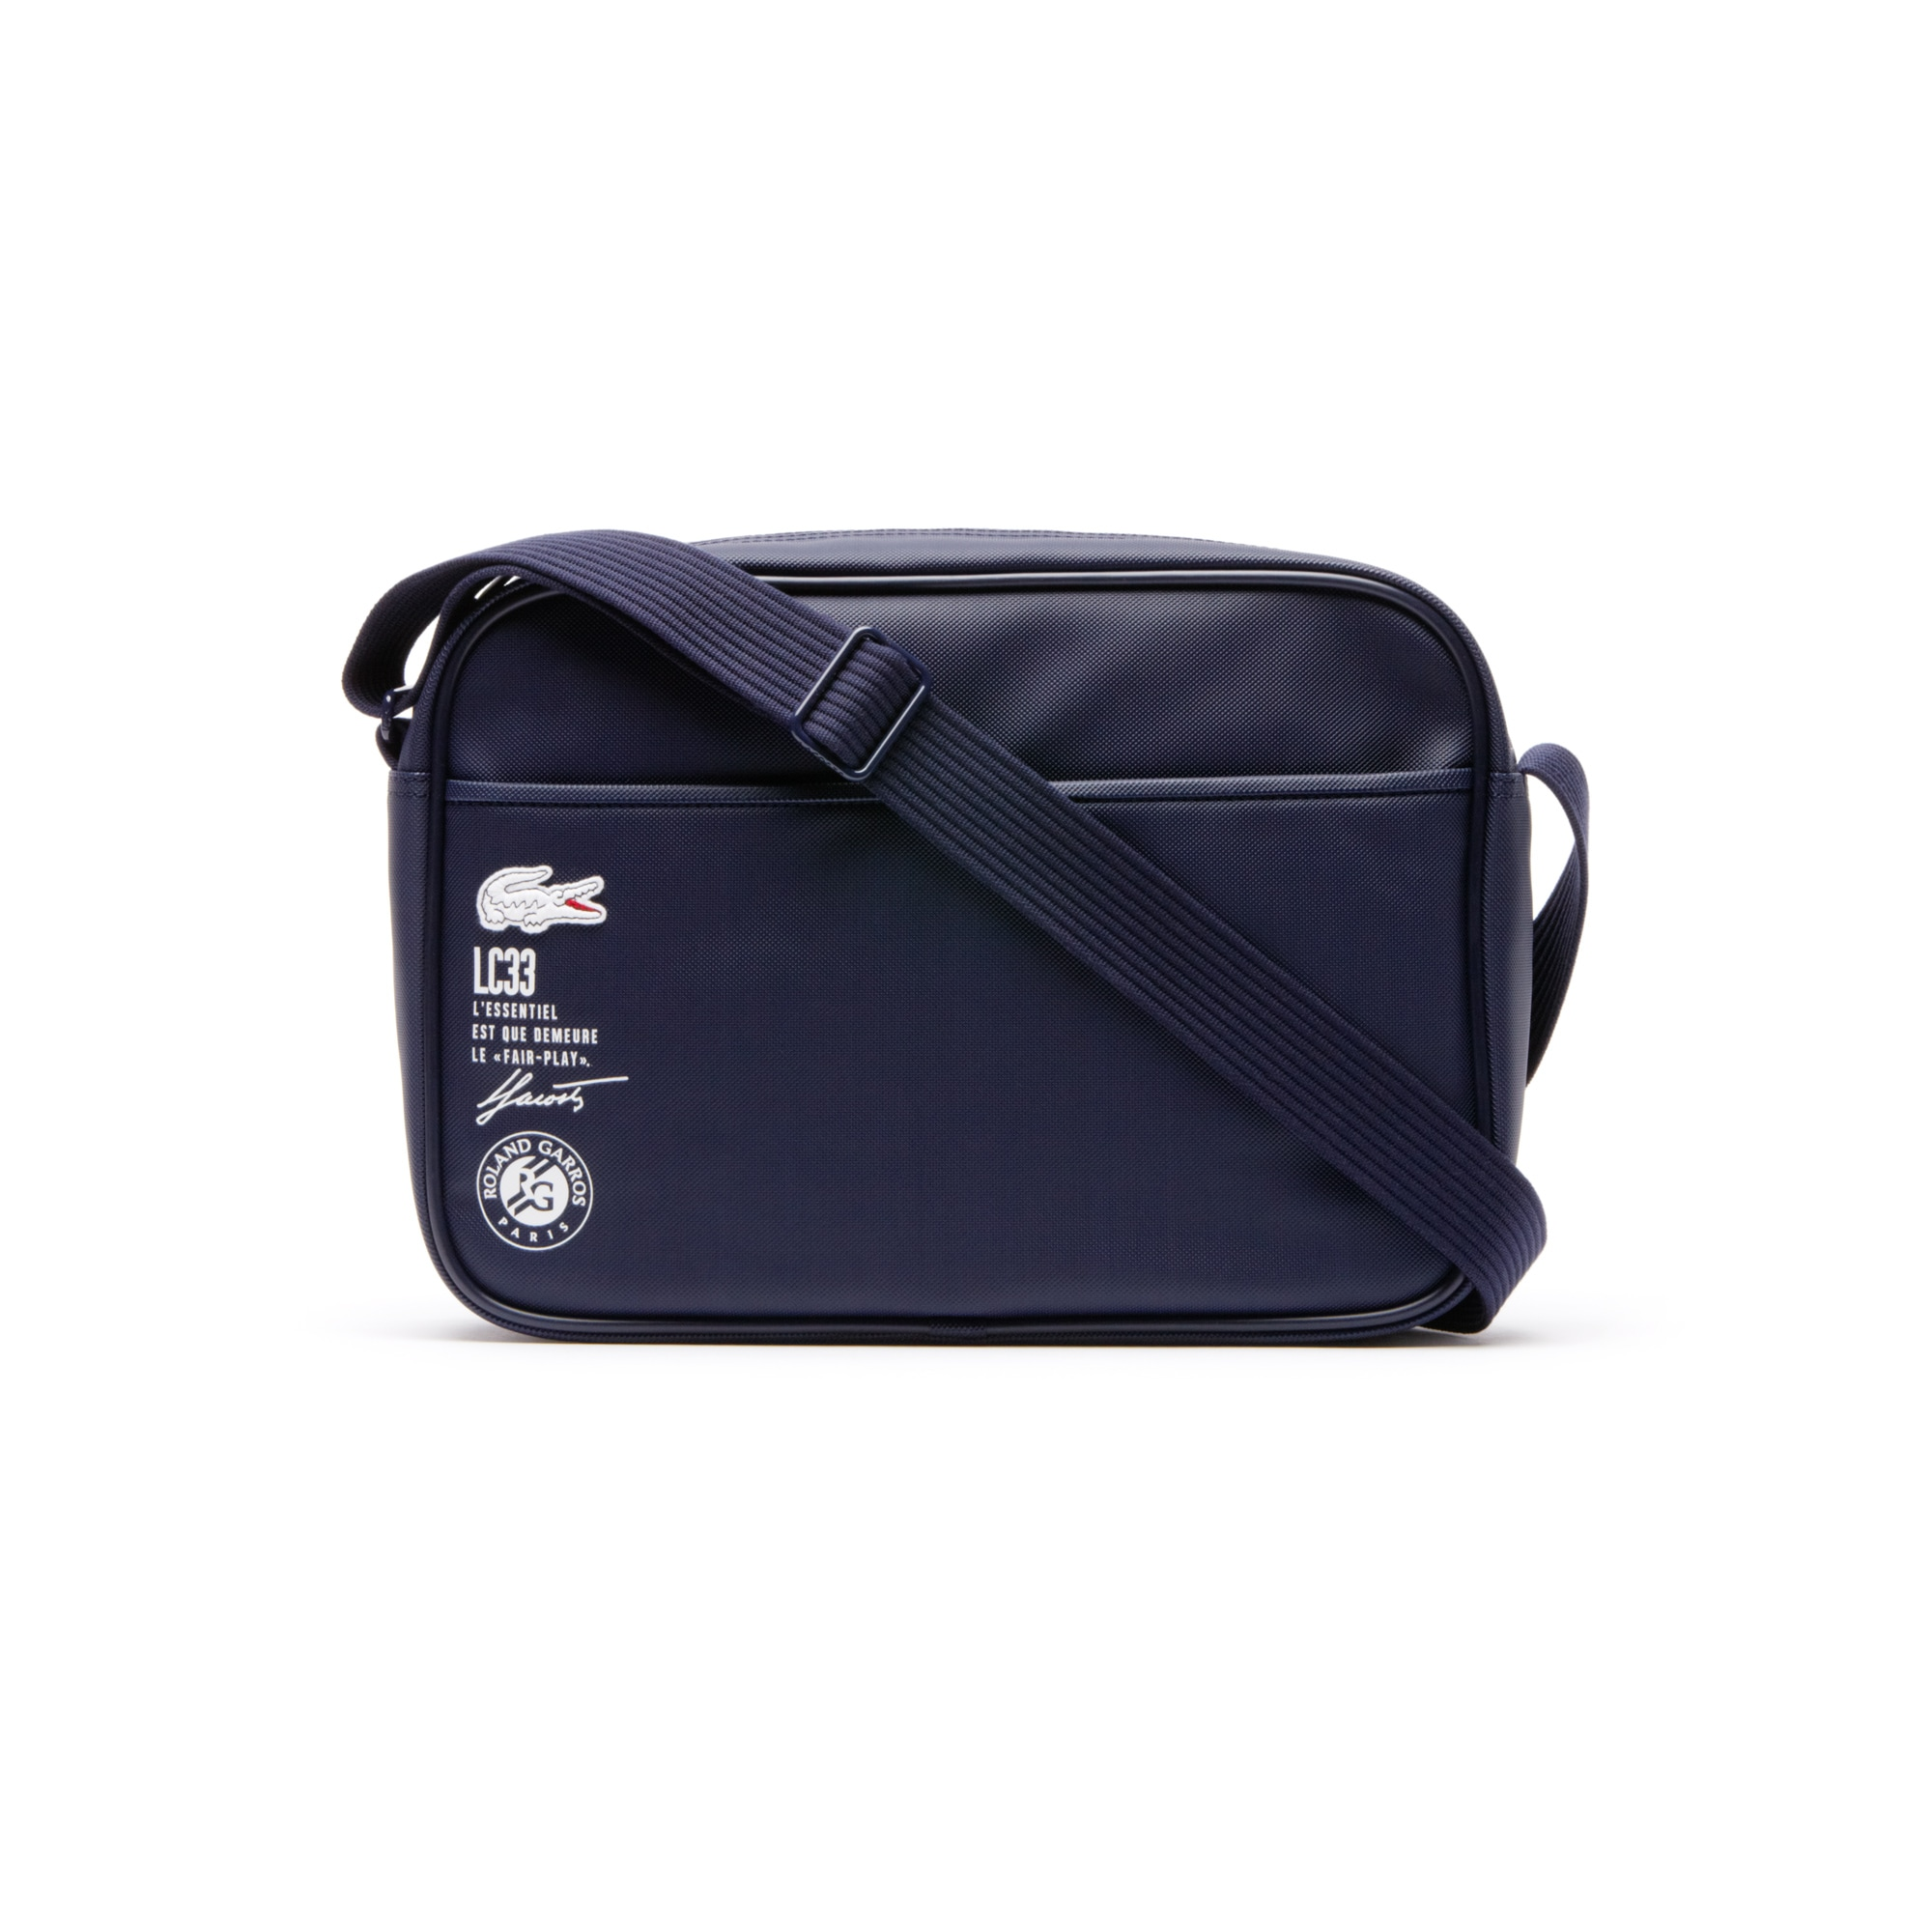 Lacoste Ultimum Airline Messenger Bag Peacoat White Free Delivery eabffe4ddf5ee